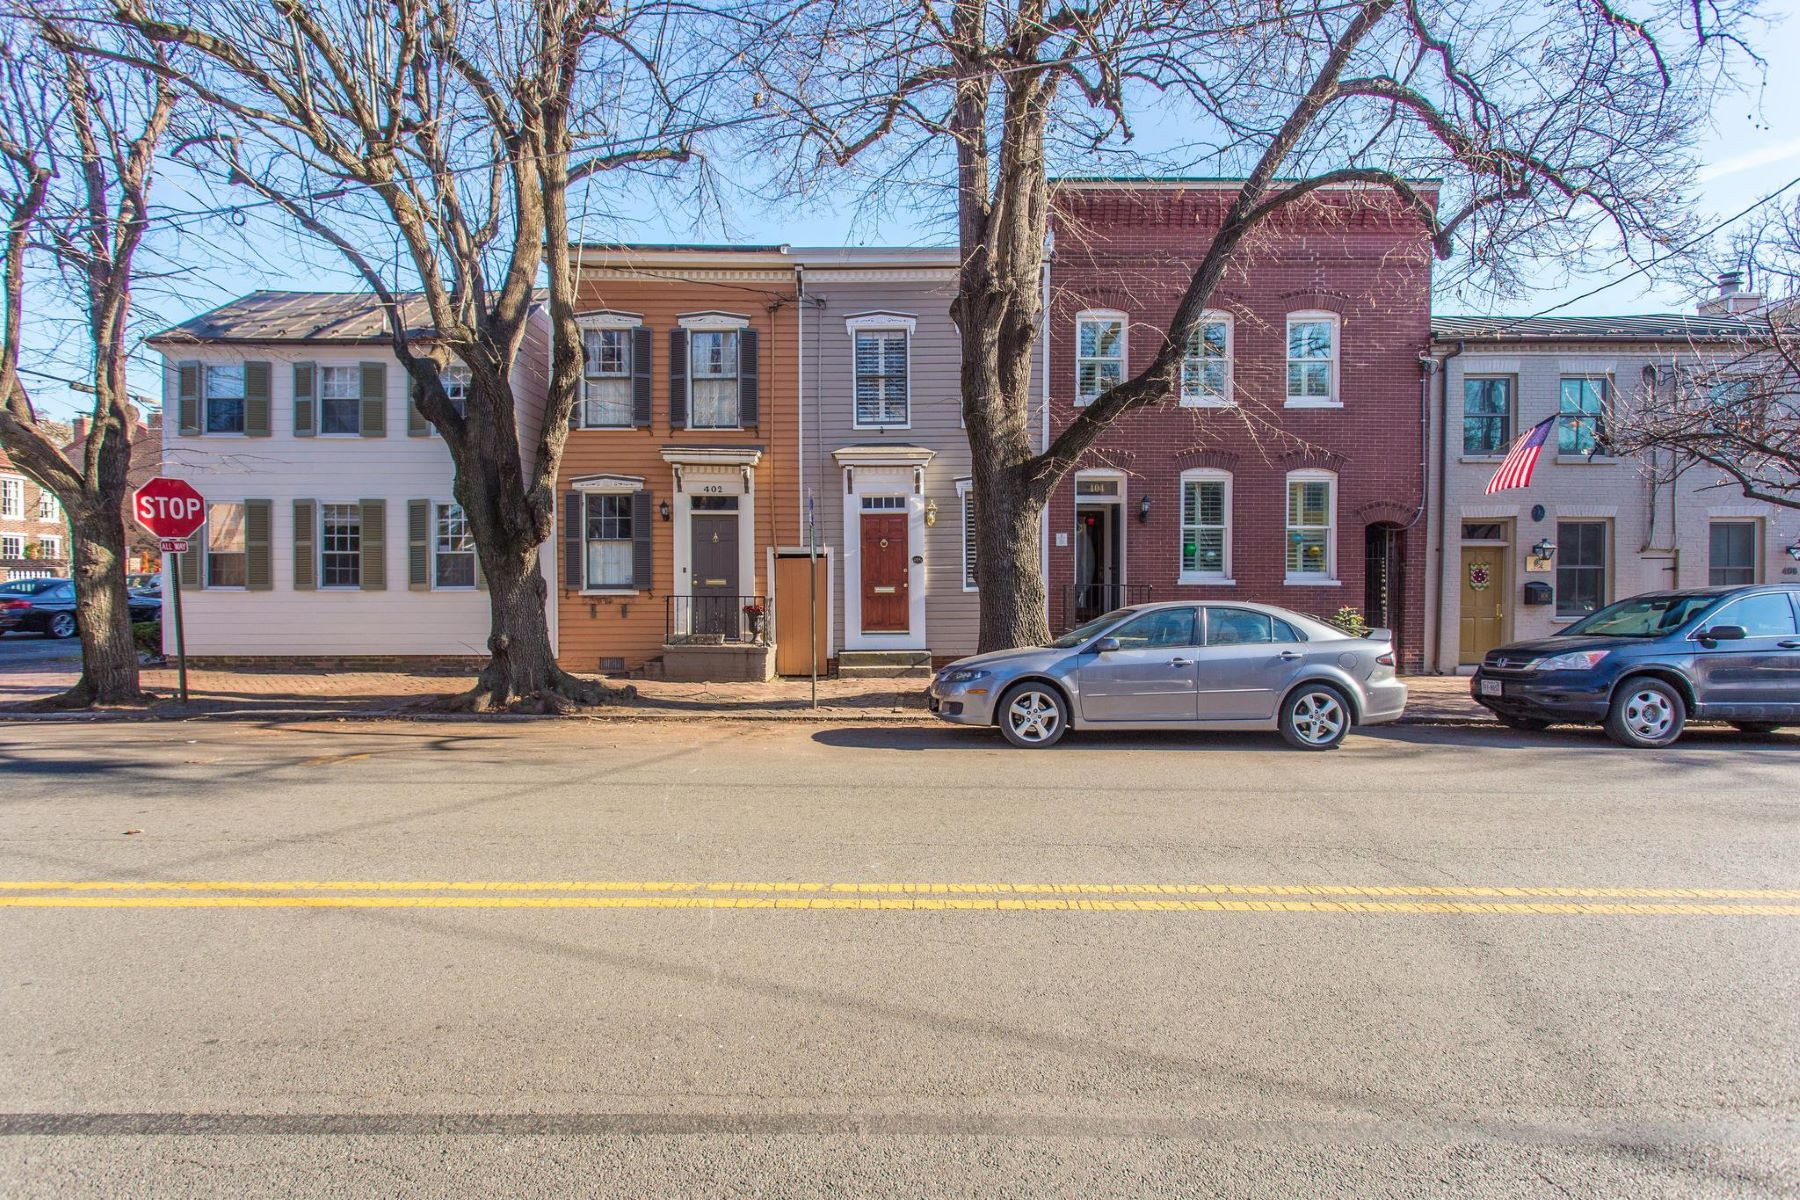 Townhouse for Sale at 4021/2 Royal St 4021/2 Royal St S Alexandria, Virginia 22314 United States